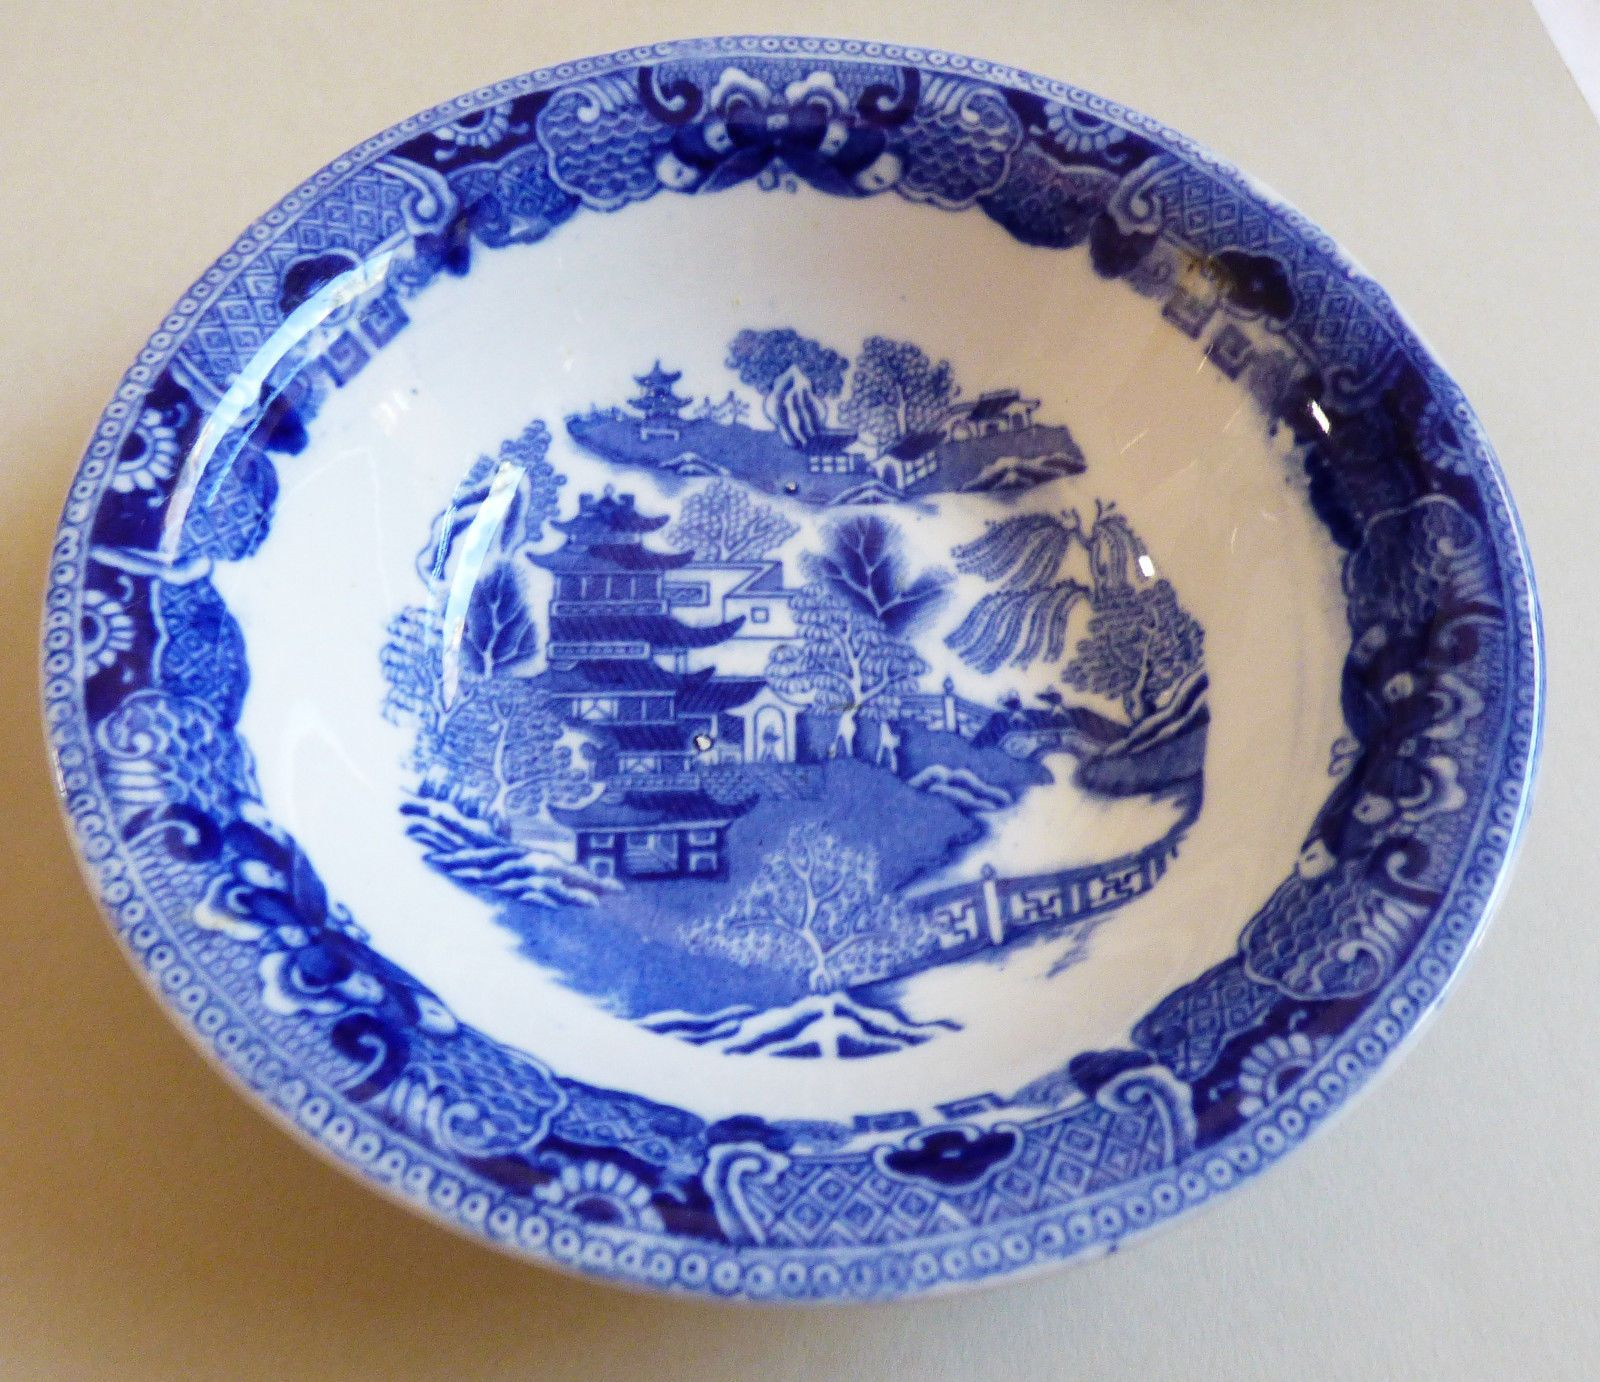 VTG Semi China W. Ridgway Blue Willow 6.5  cereal Bowl Made England & VTG Semi China W. Ridgway Blue Willow 6.5